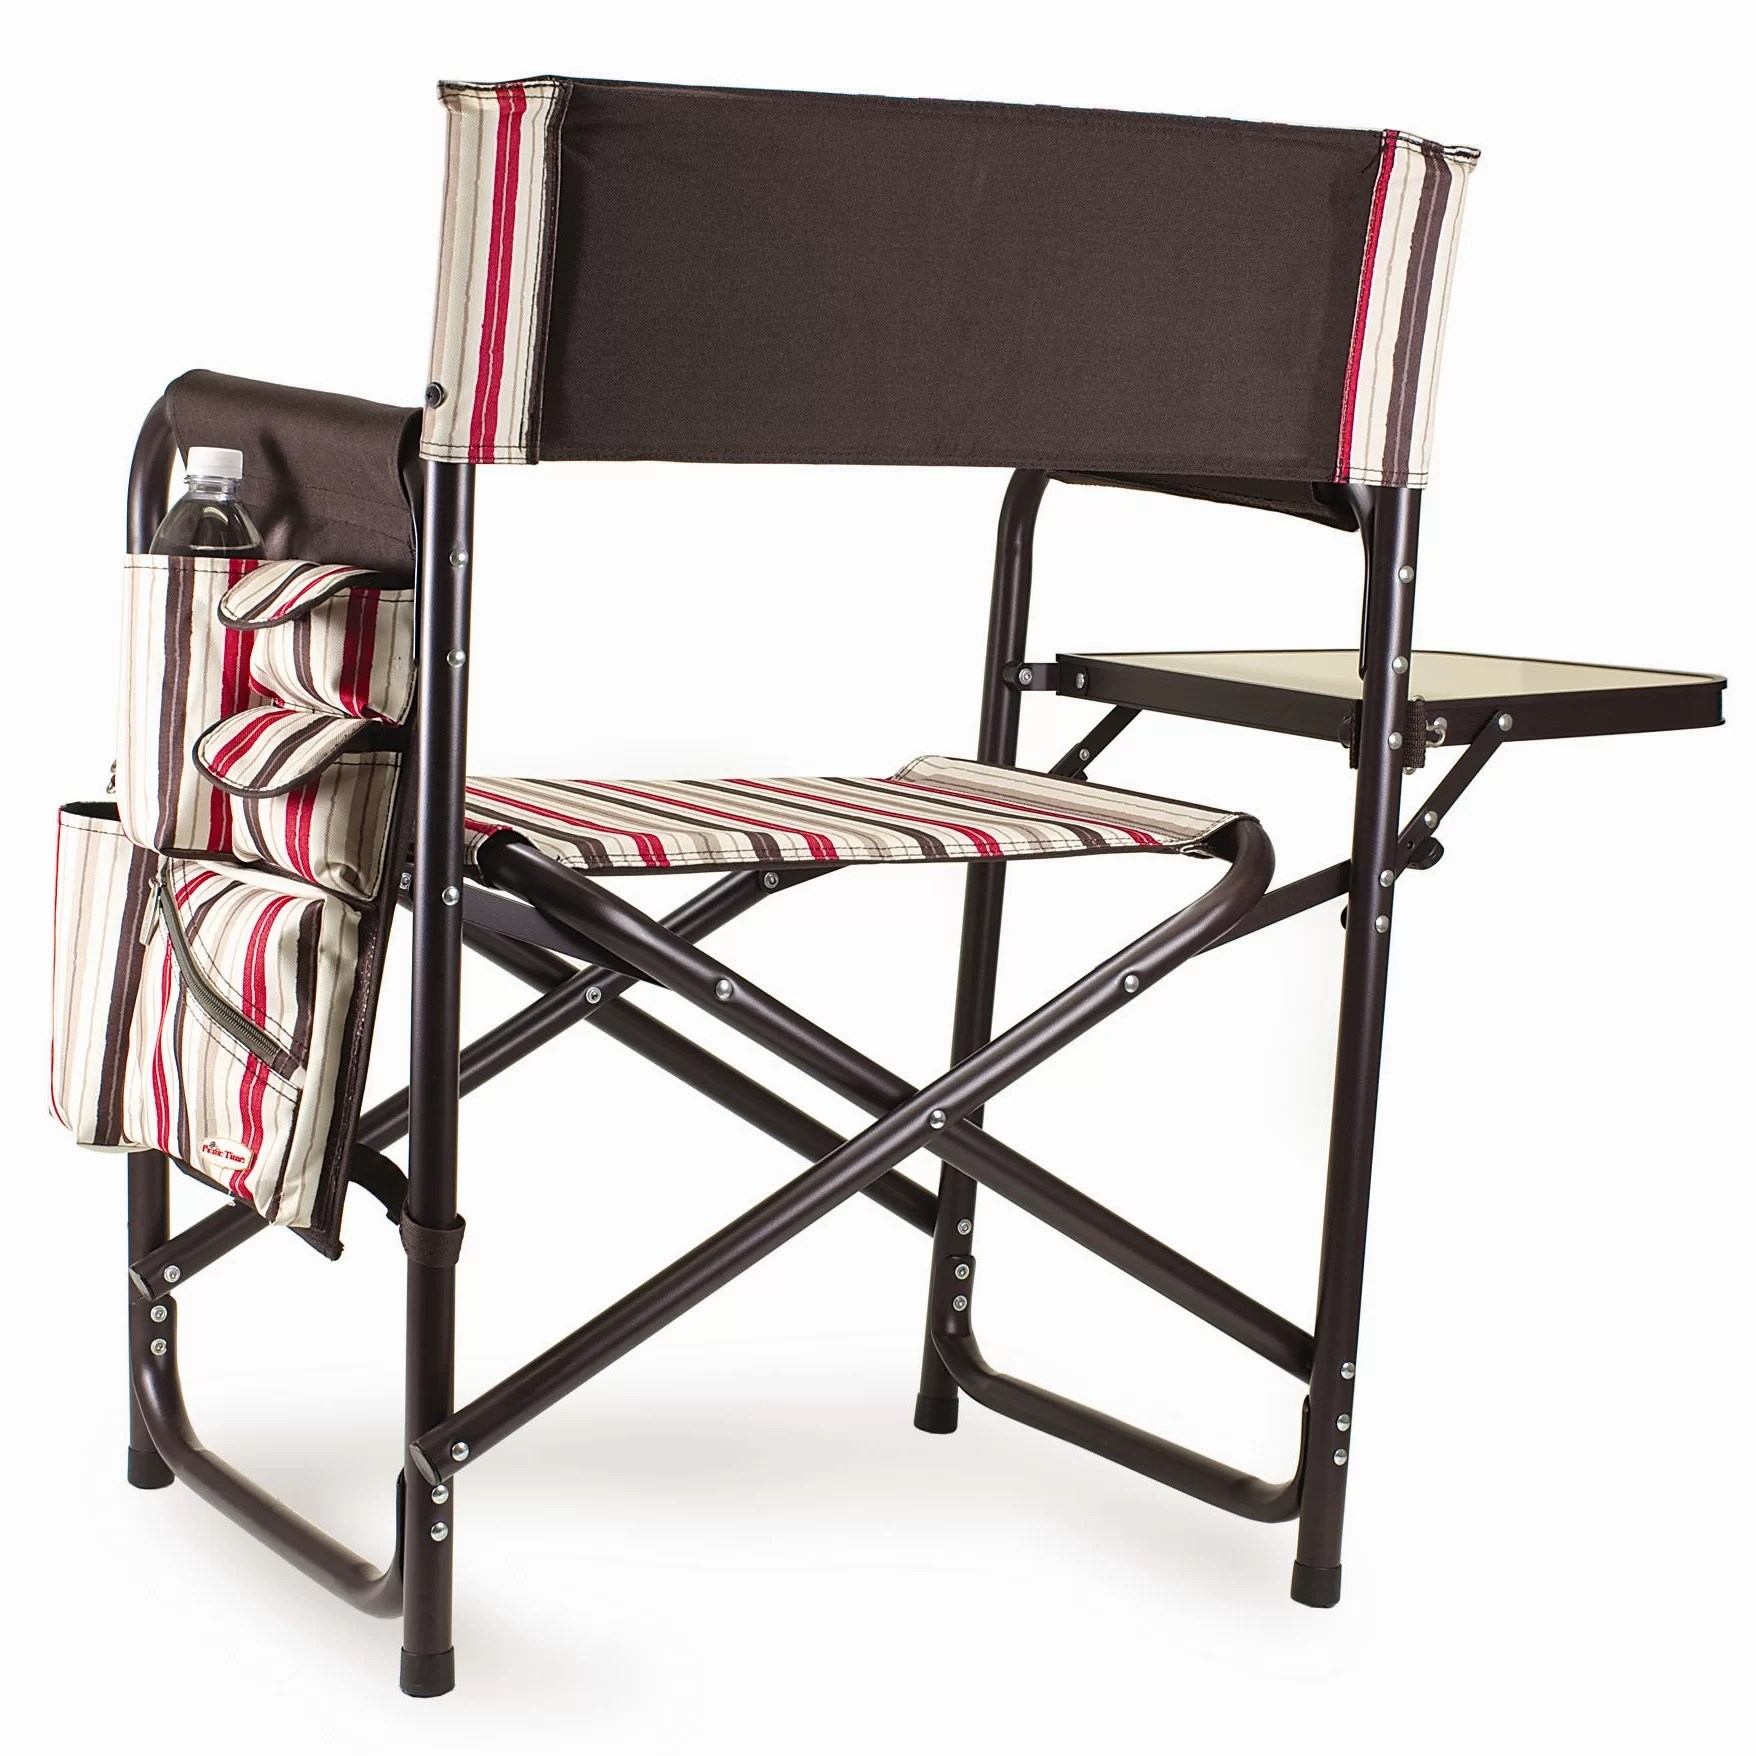 picnic time chairs folding walmart camping sports chair ebay